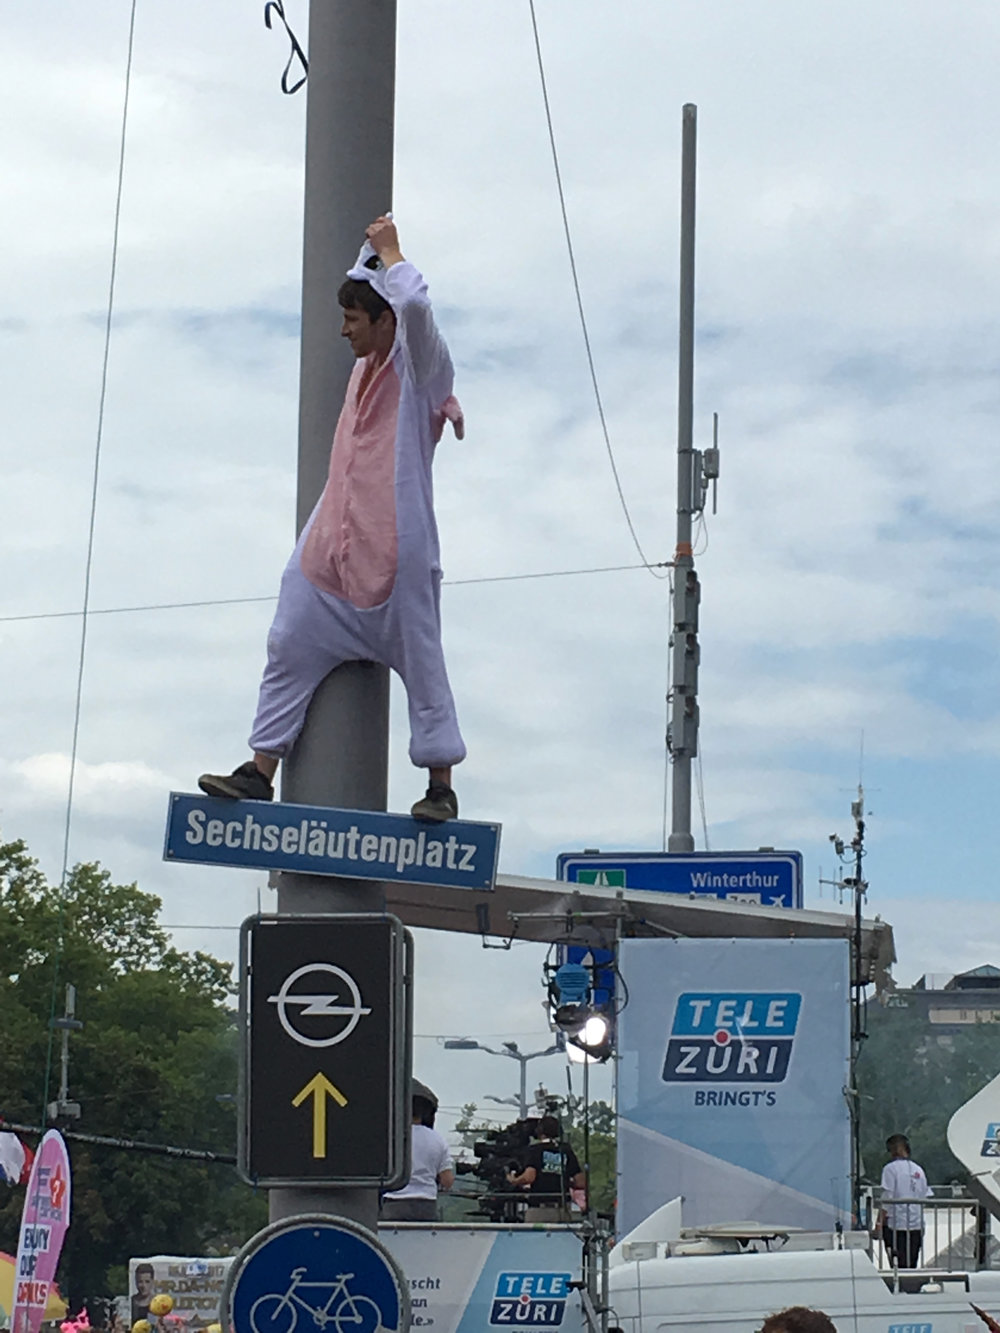 Fined for climbing a street sign? Pay cash and it never happened. Street Parade in Zurich, Switzerland. Photo: (C) Remko Tanis